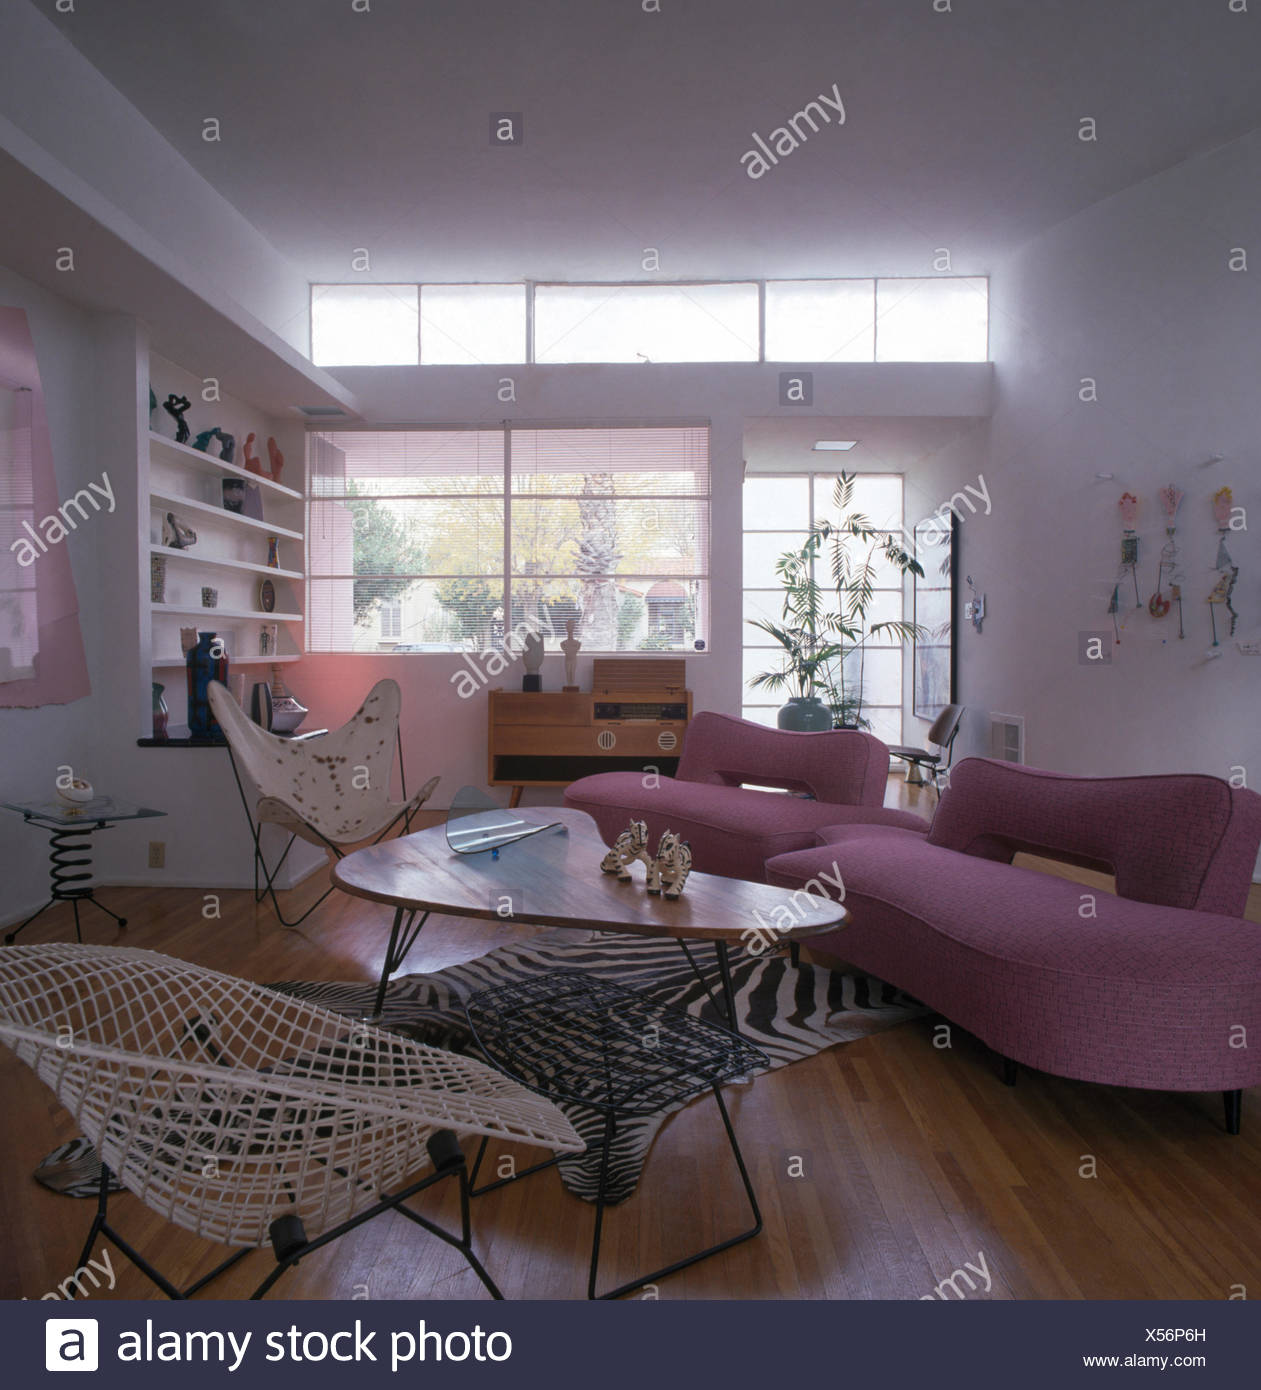 Superb Pink Sofas And Cowhide Hardoy Bkf Butterfly Chairs With Caraccident5 Cool Chair Designs And Ideas Caraccident5Info